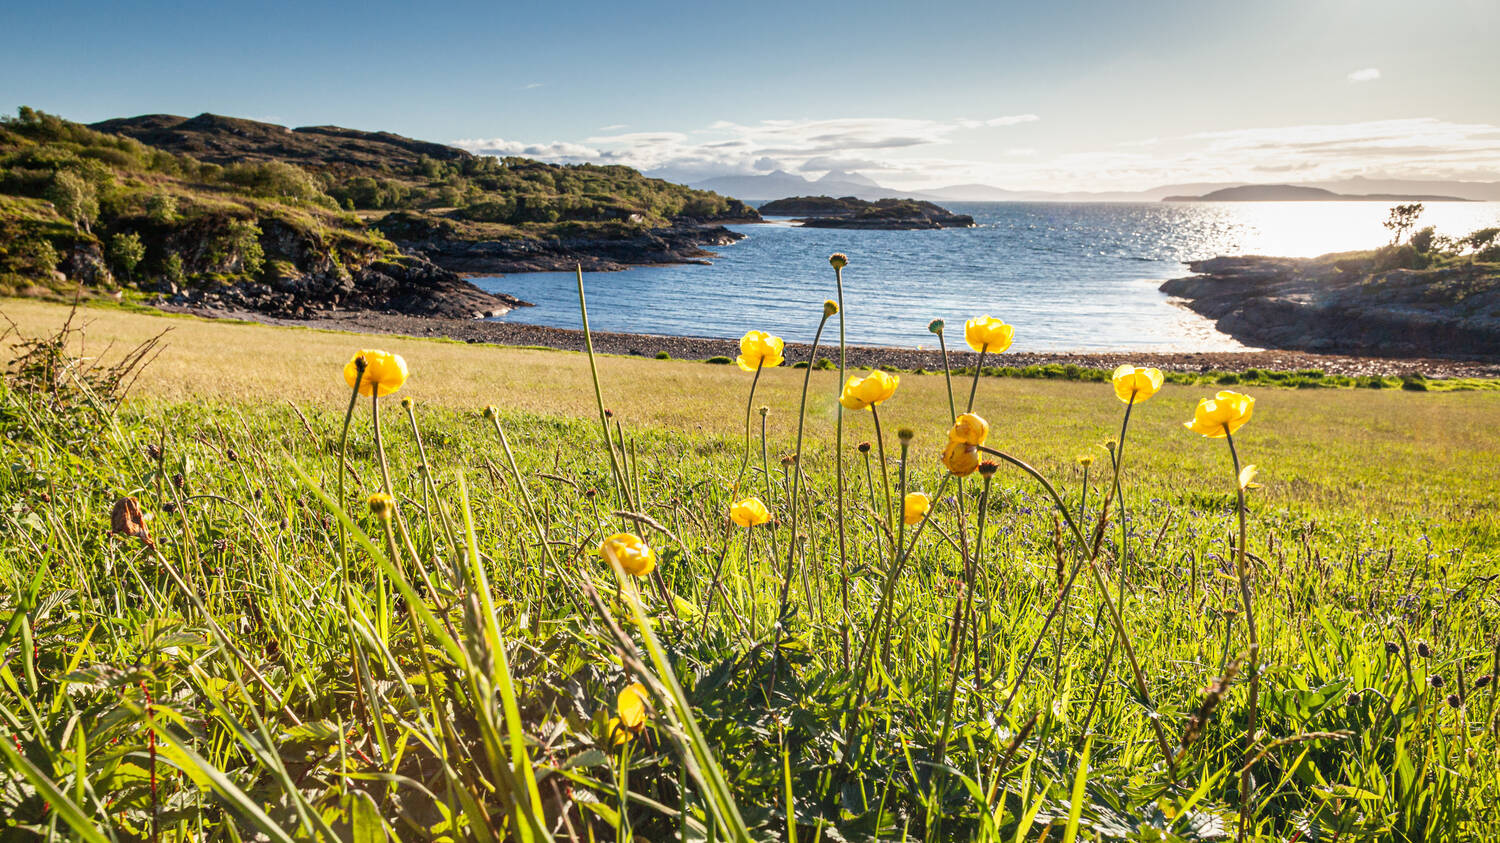 A meadow beside the sea on a sunny day, with the sun twinkling on the blue water. Tall yellow flowers grow in the foreground.